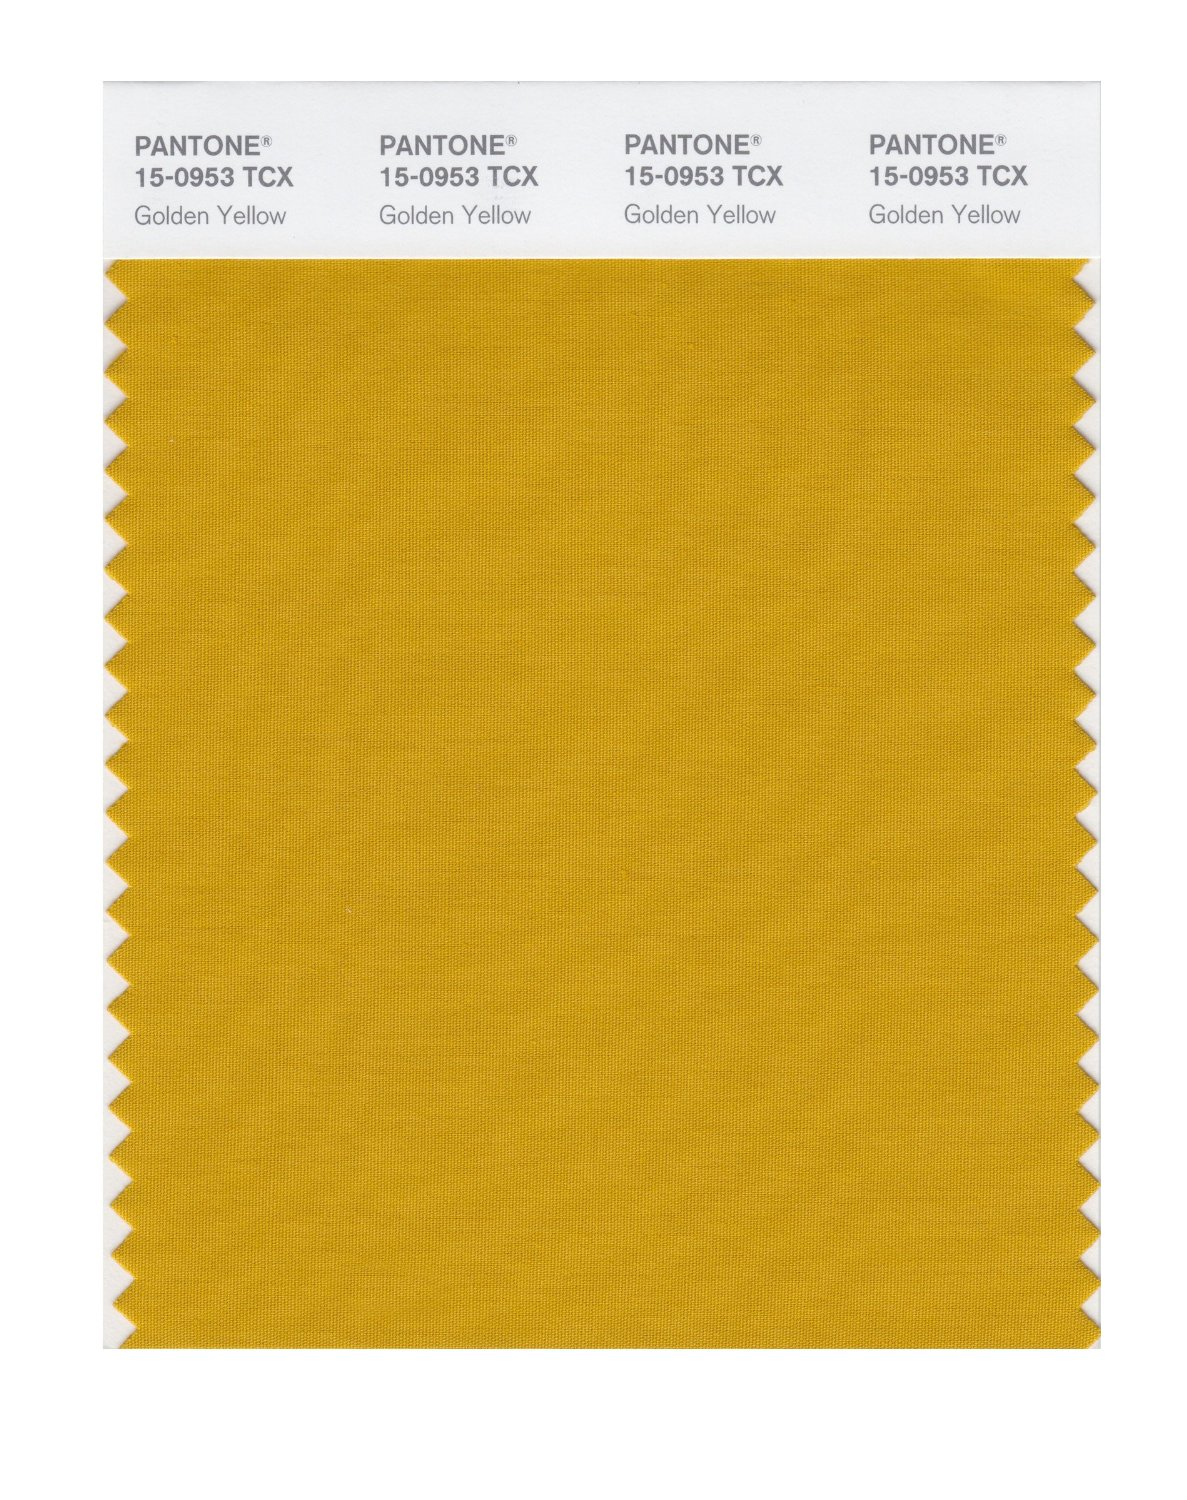 Pantone Smart Swatch 15-0953 Golden Yellow